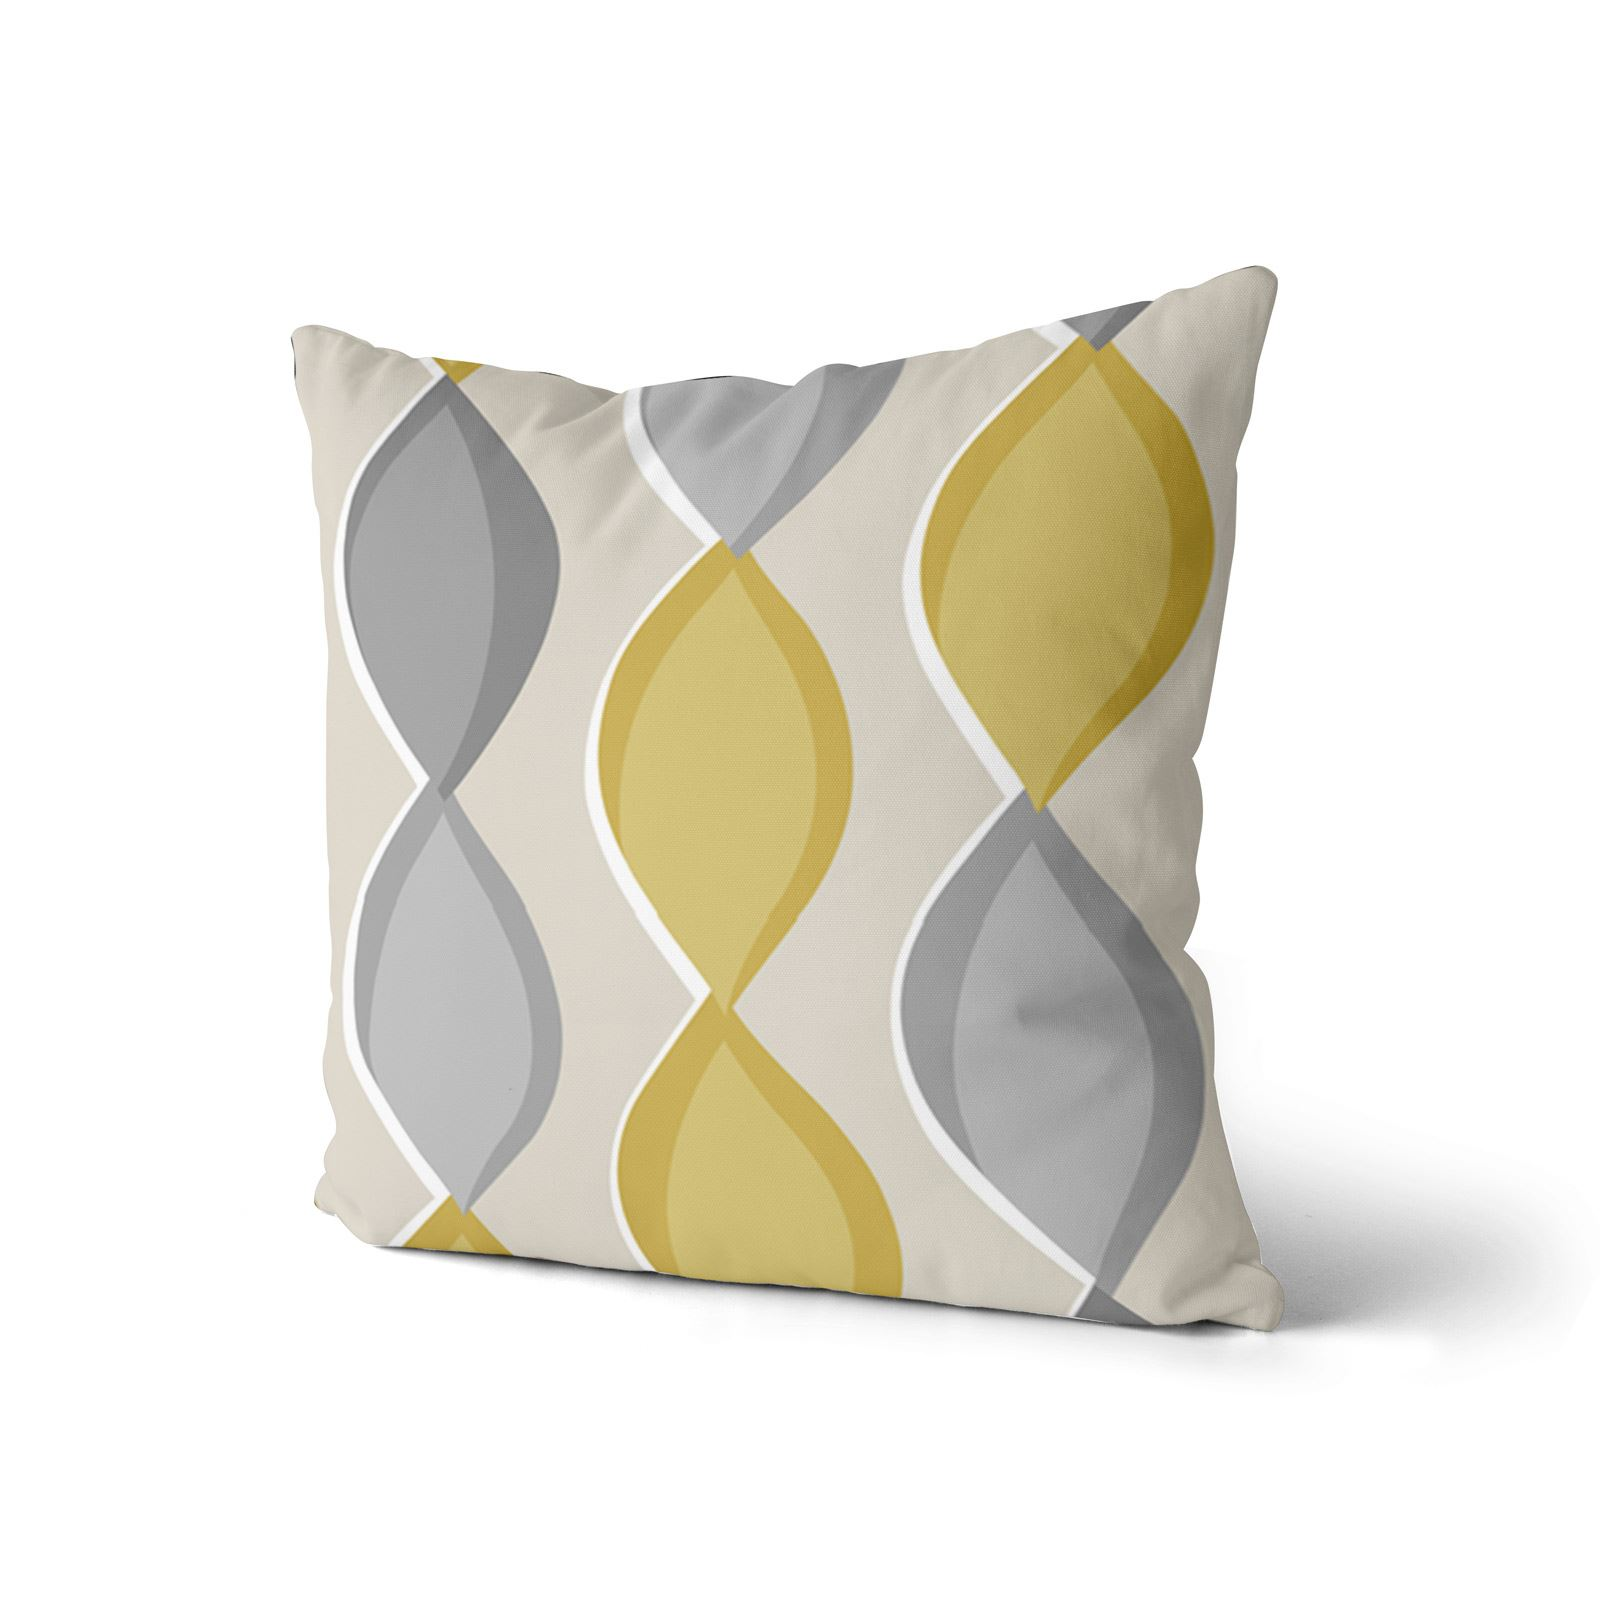 Grey-Ochre-Mustard-Cushion-Cover-Collection-17-034-18-034-Covers-Filled-Cushions thumbnail 83